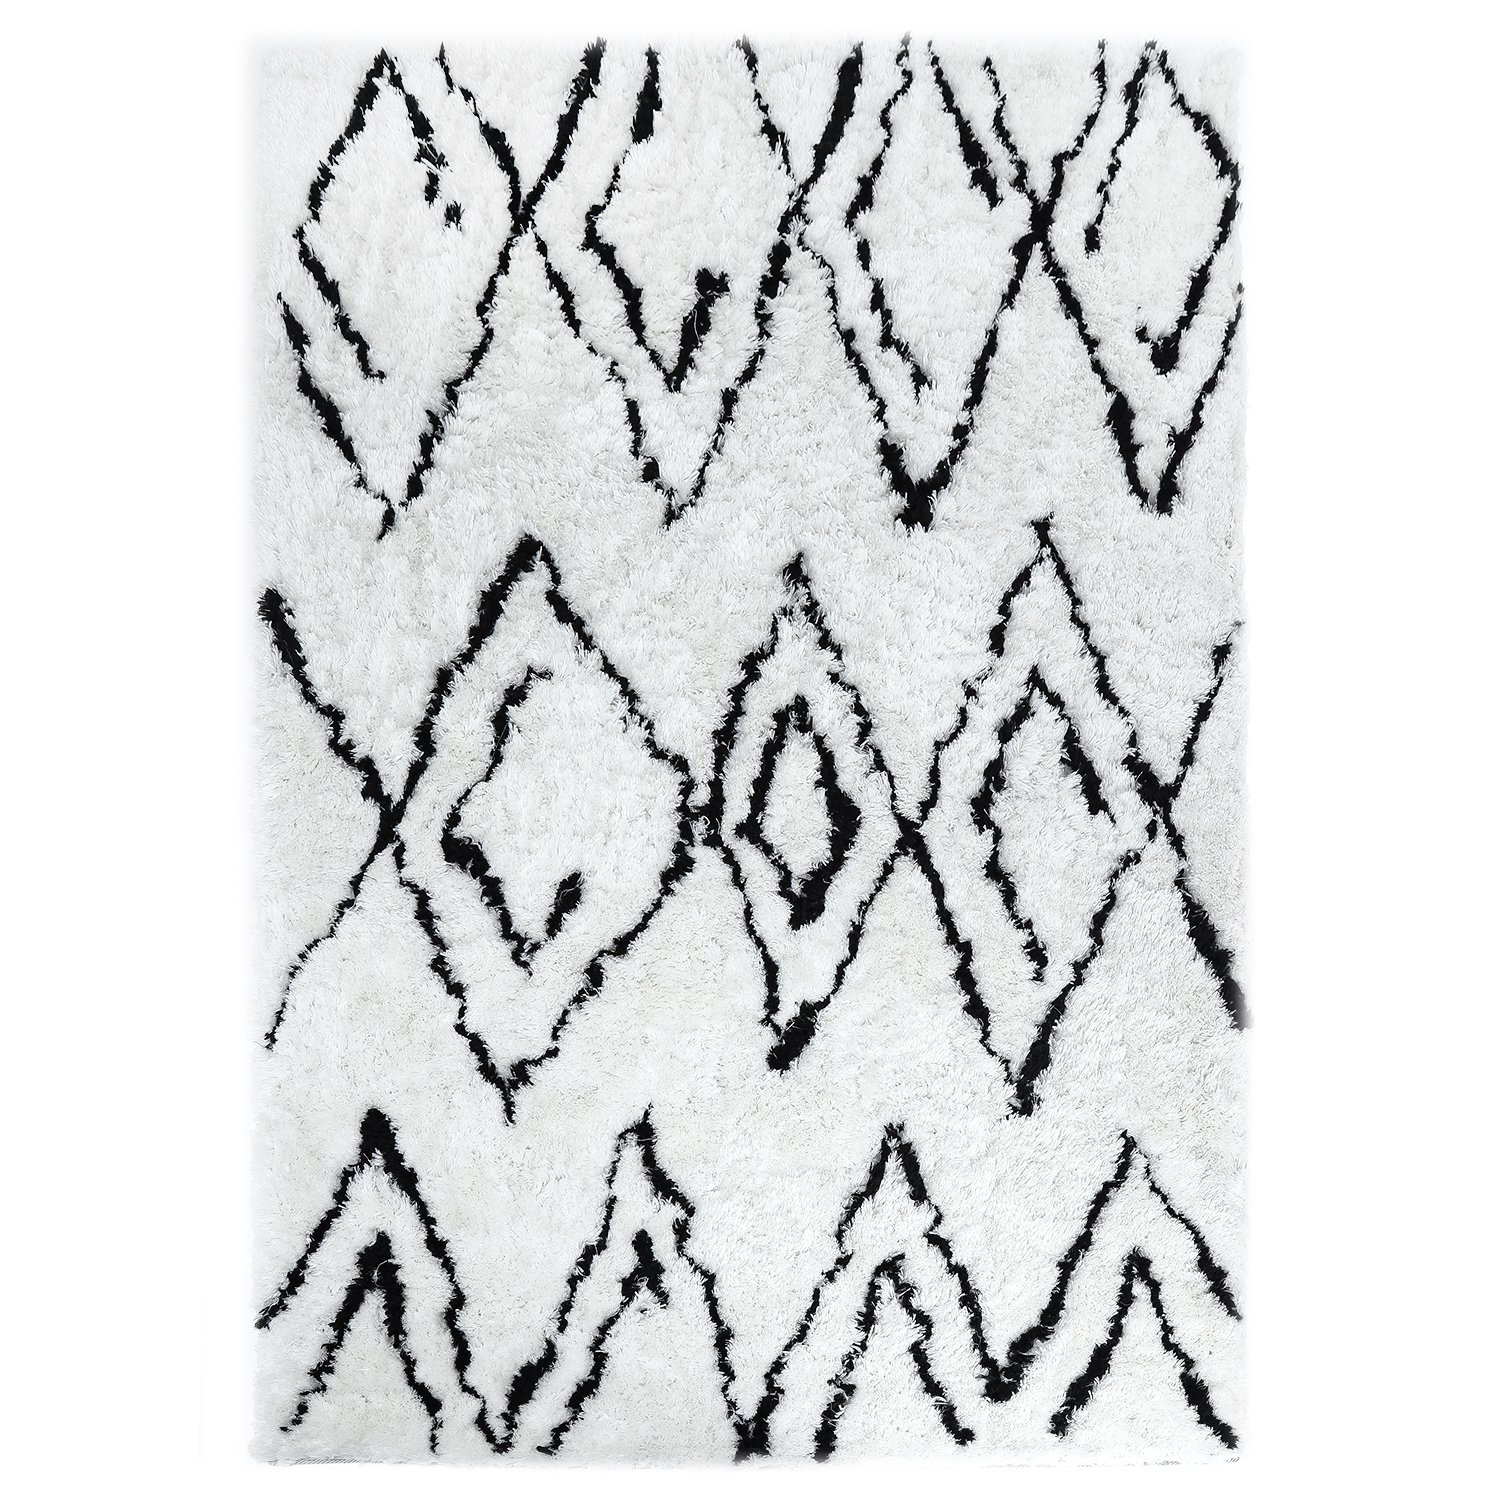 LOCHAS Moroccan Collection Pattern Shag Area Rug for Living Room Bedroom Modern Plush Carpet, 6.6' x 10', White and Black